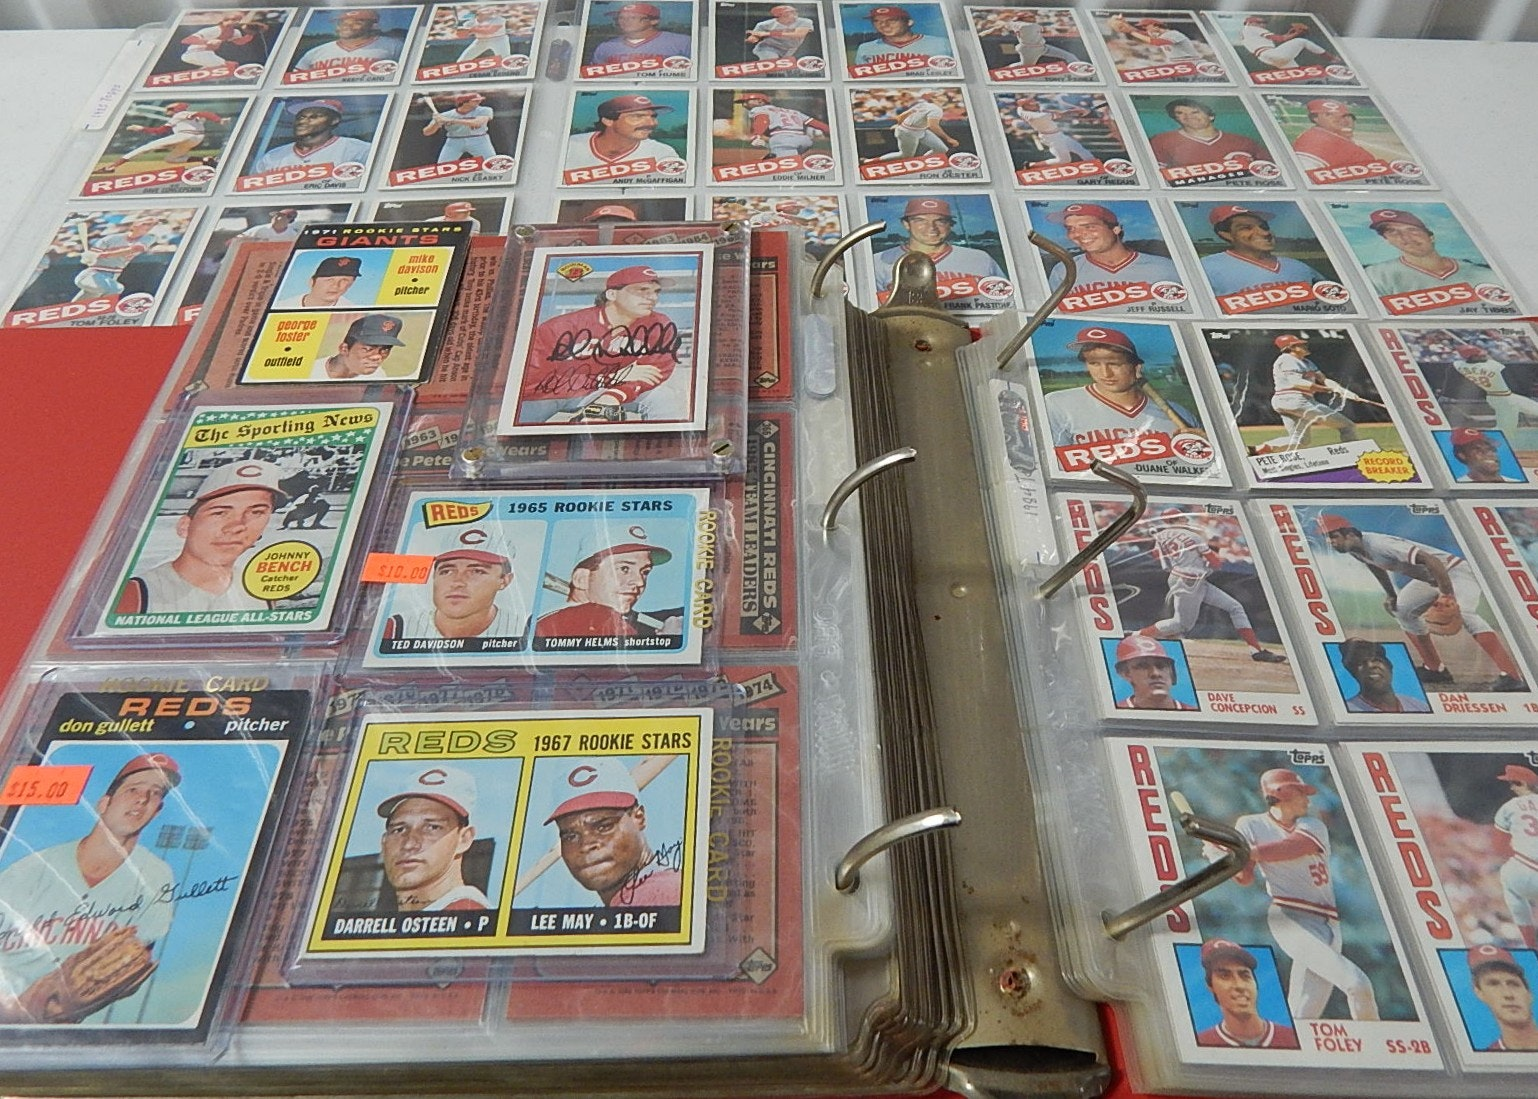 Cincinnati Reds Baseball Card Album from 1980s